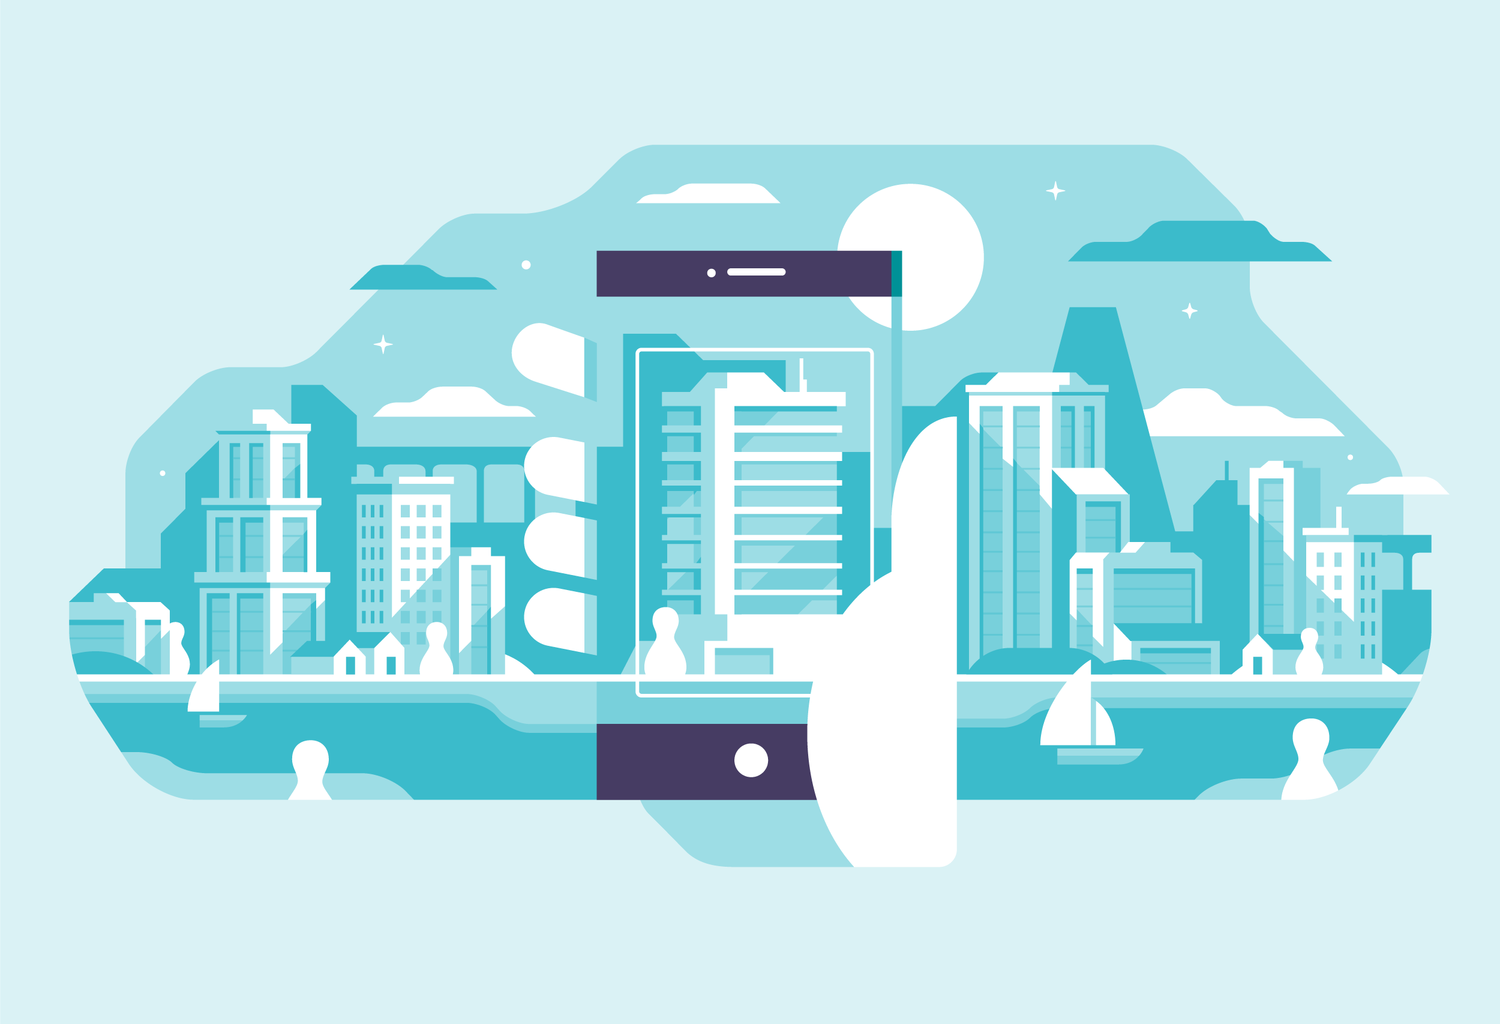 Hand holding camera phone taking photo of city skyline with limited color palette. Illustration by Matt Anderson.